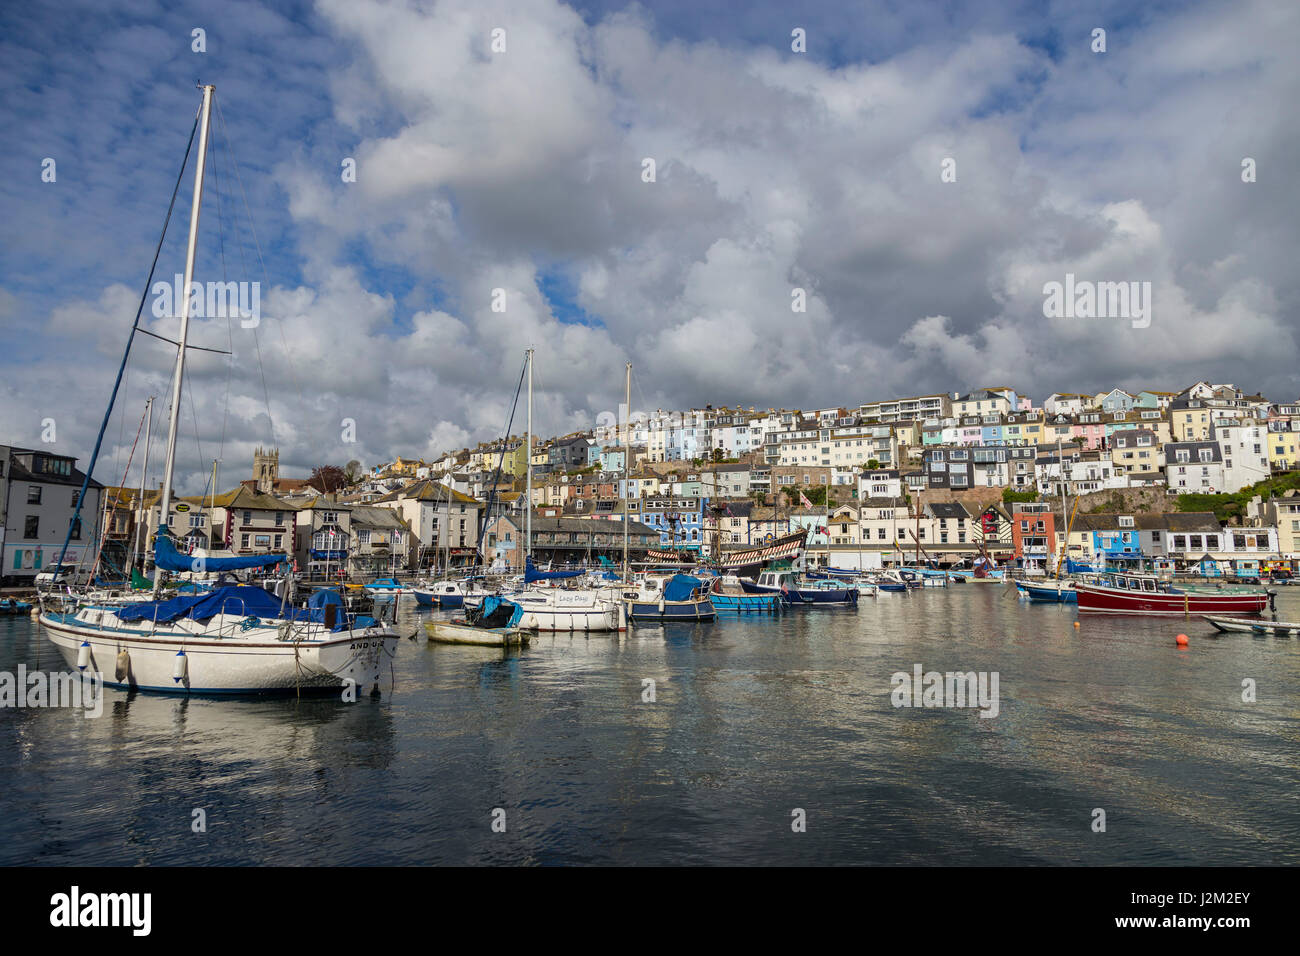 View across Brixham Harbour and Marina,  in South Devon, UK - Stock Image